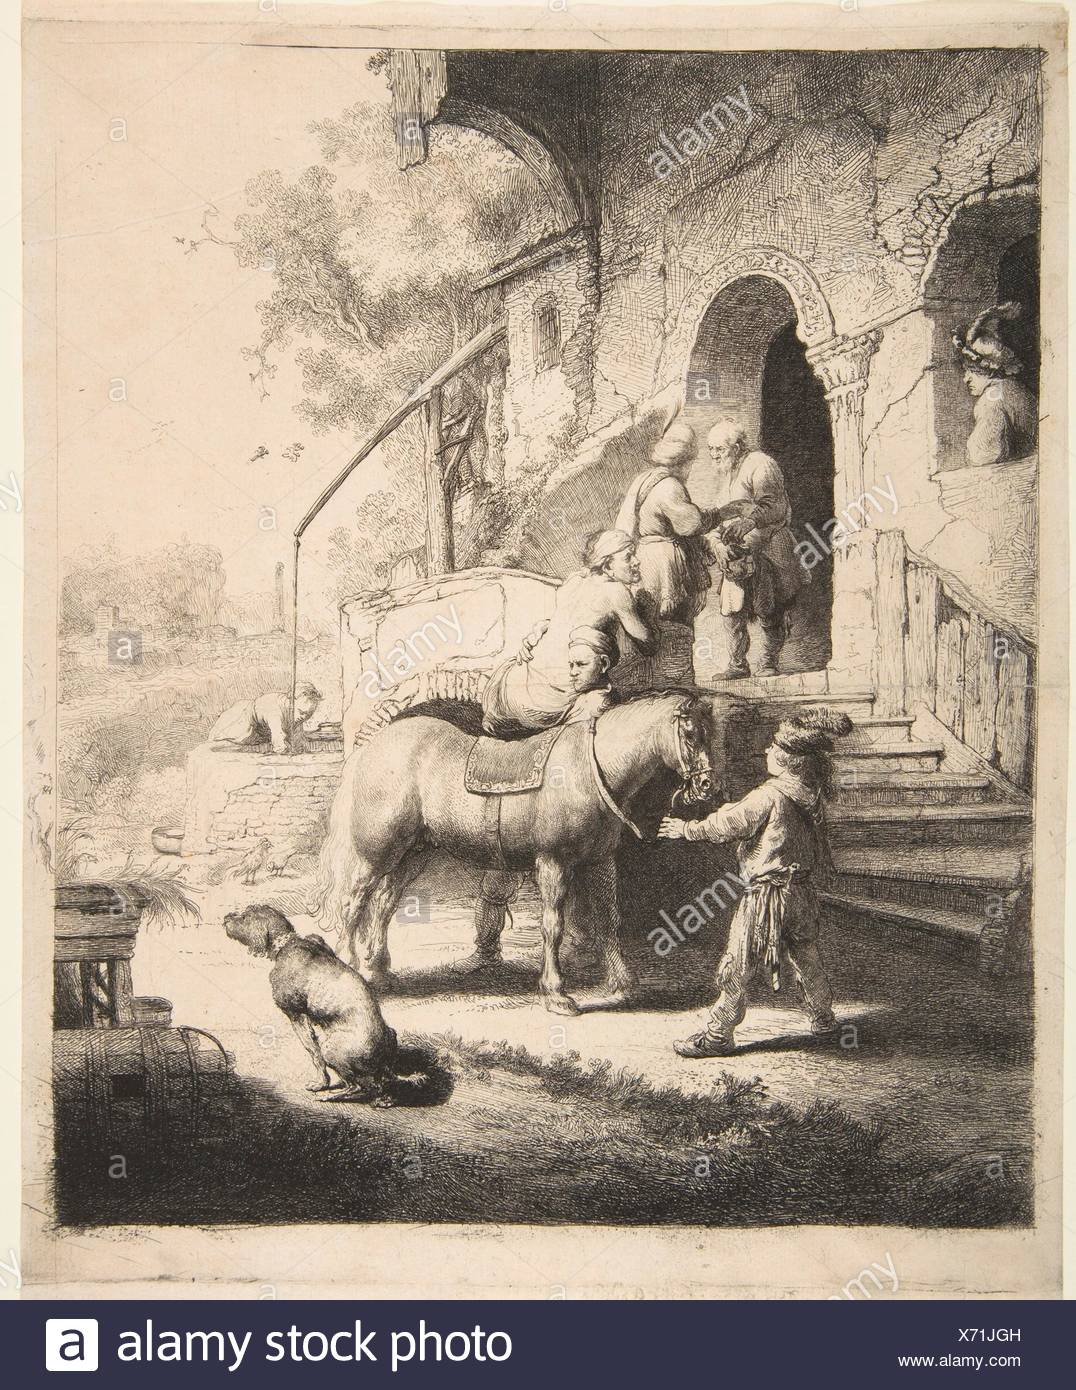 Artist: Rembrandt (Rembrandt van Rijn) (Dutch, Leiden 1606-1669 Amsterdam);  Date: 1633; Medium: Etching, engraving and drypoint;